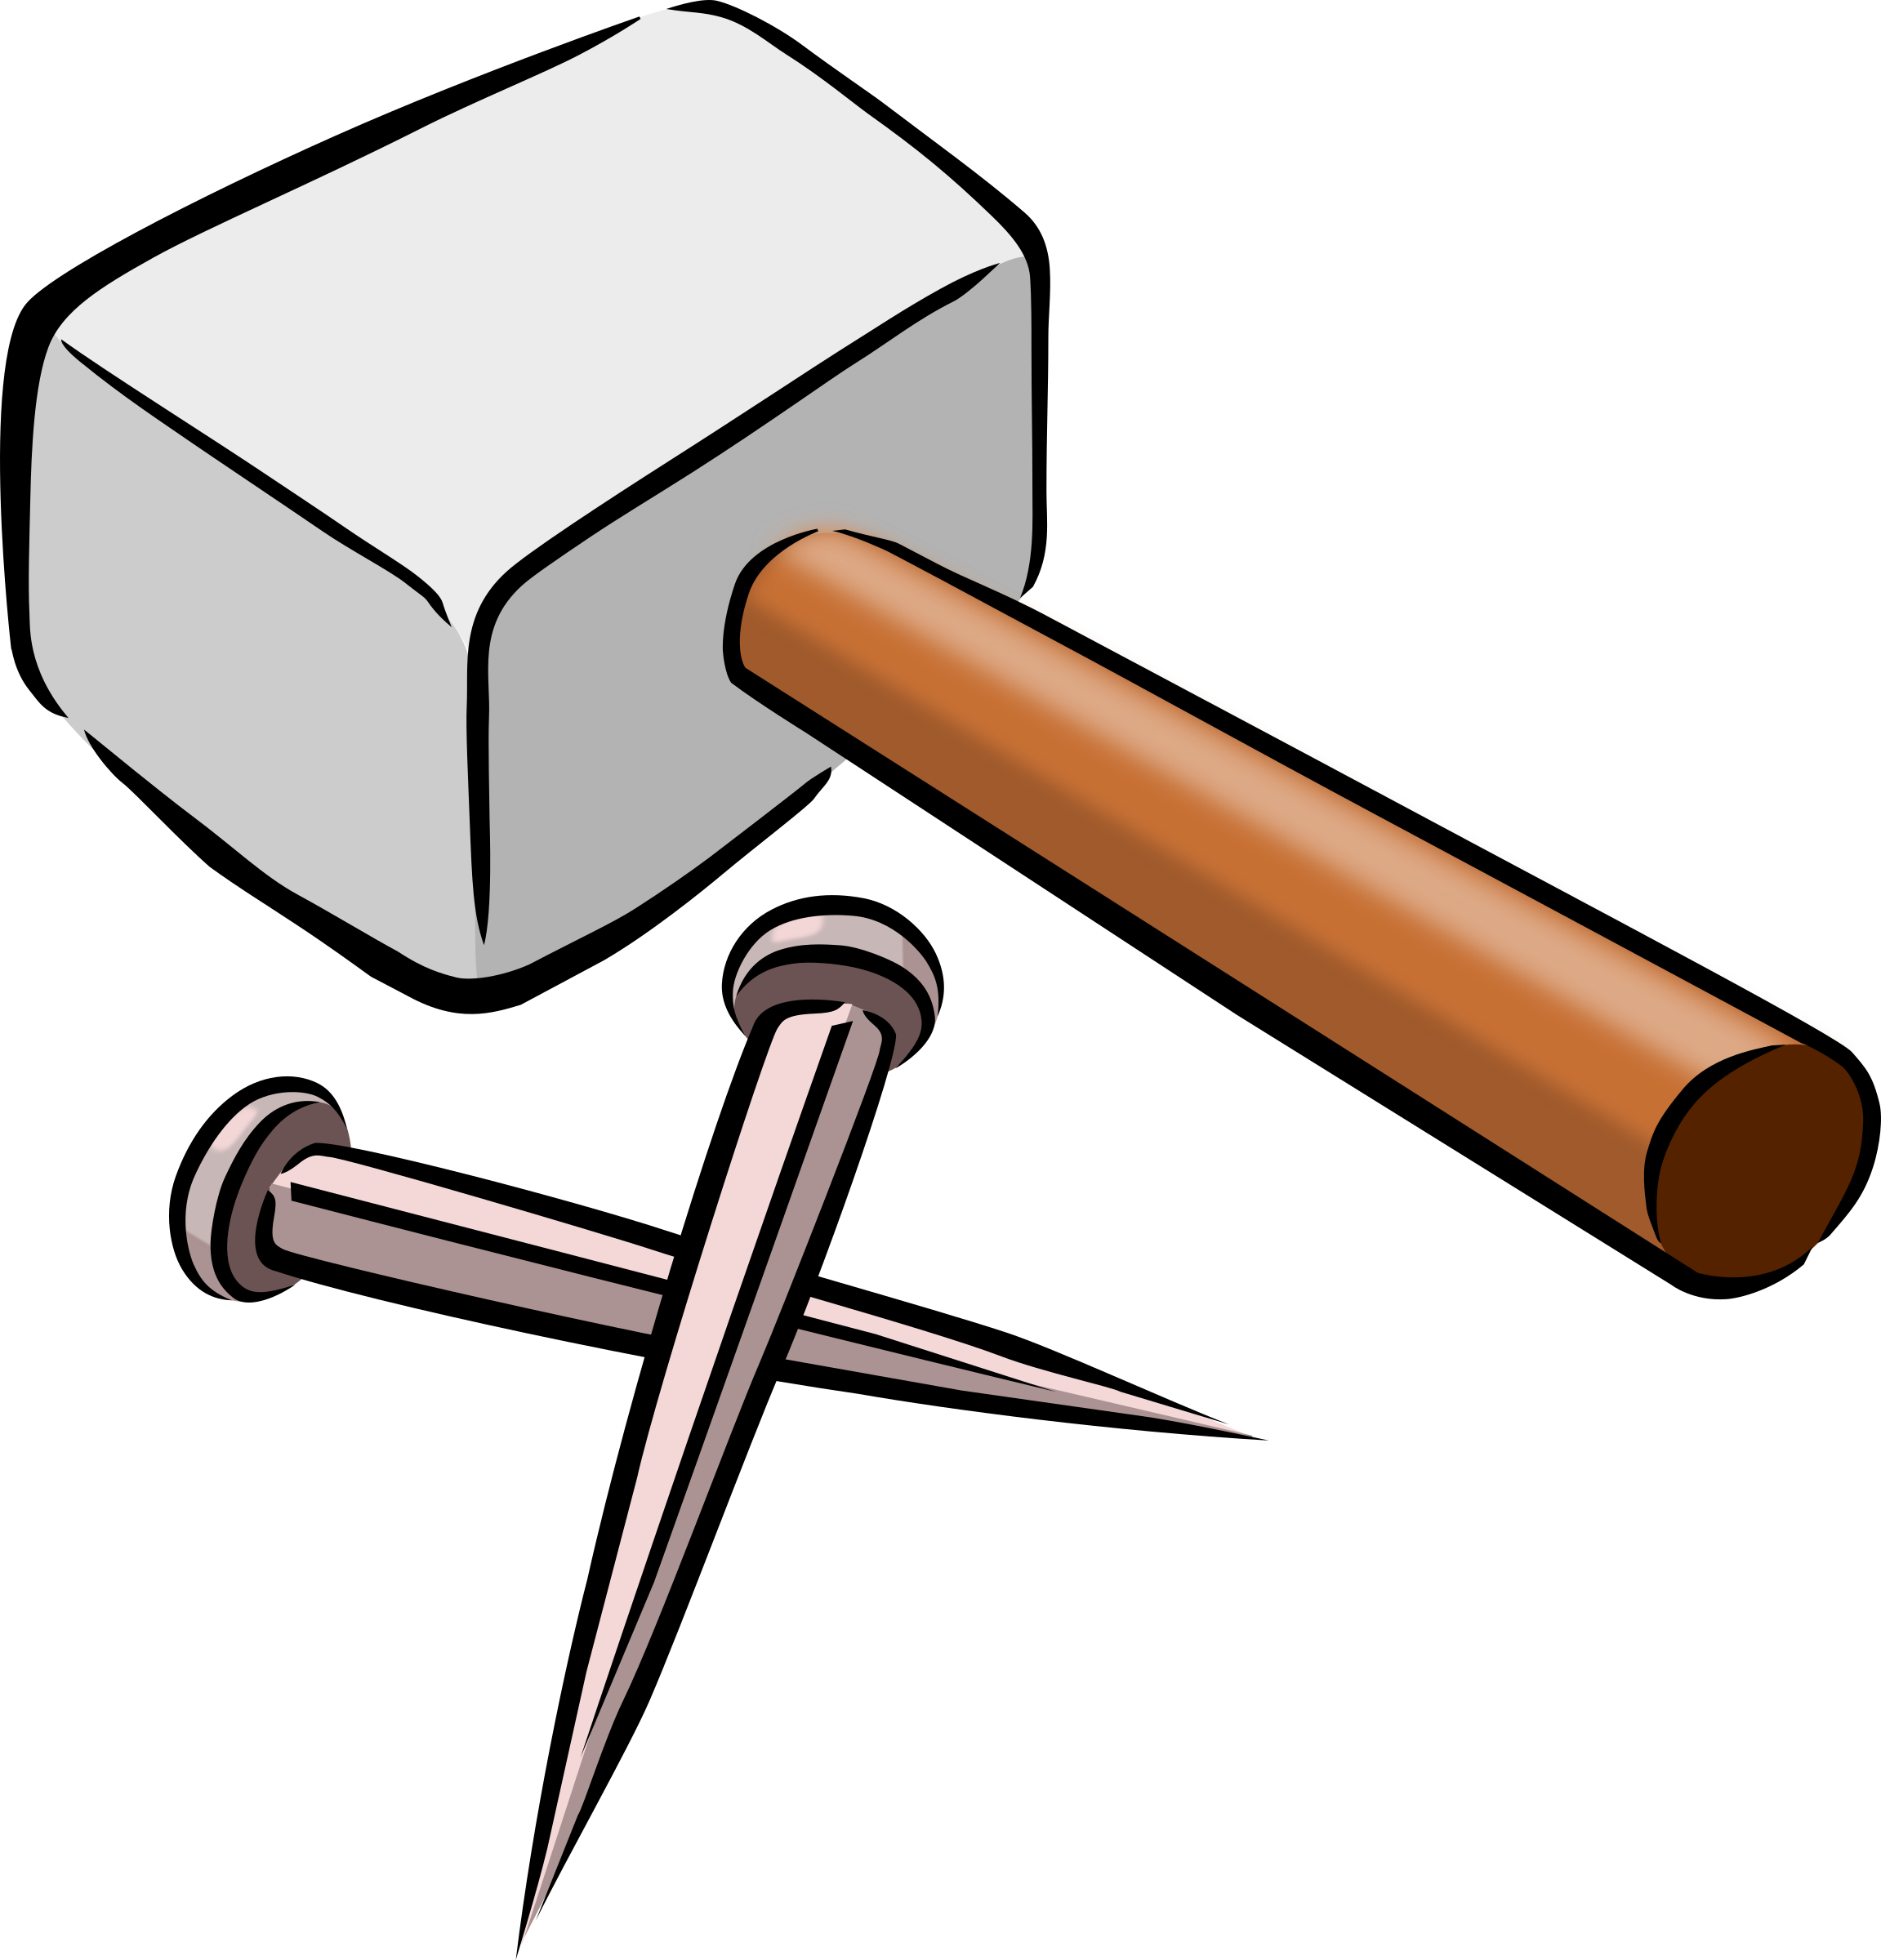 Clipart hammer design technology tool. And nails icons png